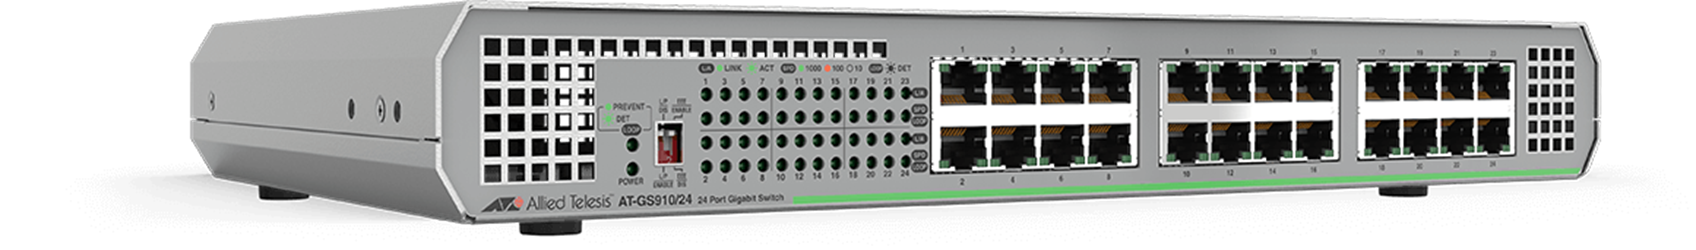 AT-GS910 Series - Unmanaged Gigabit Switch